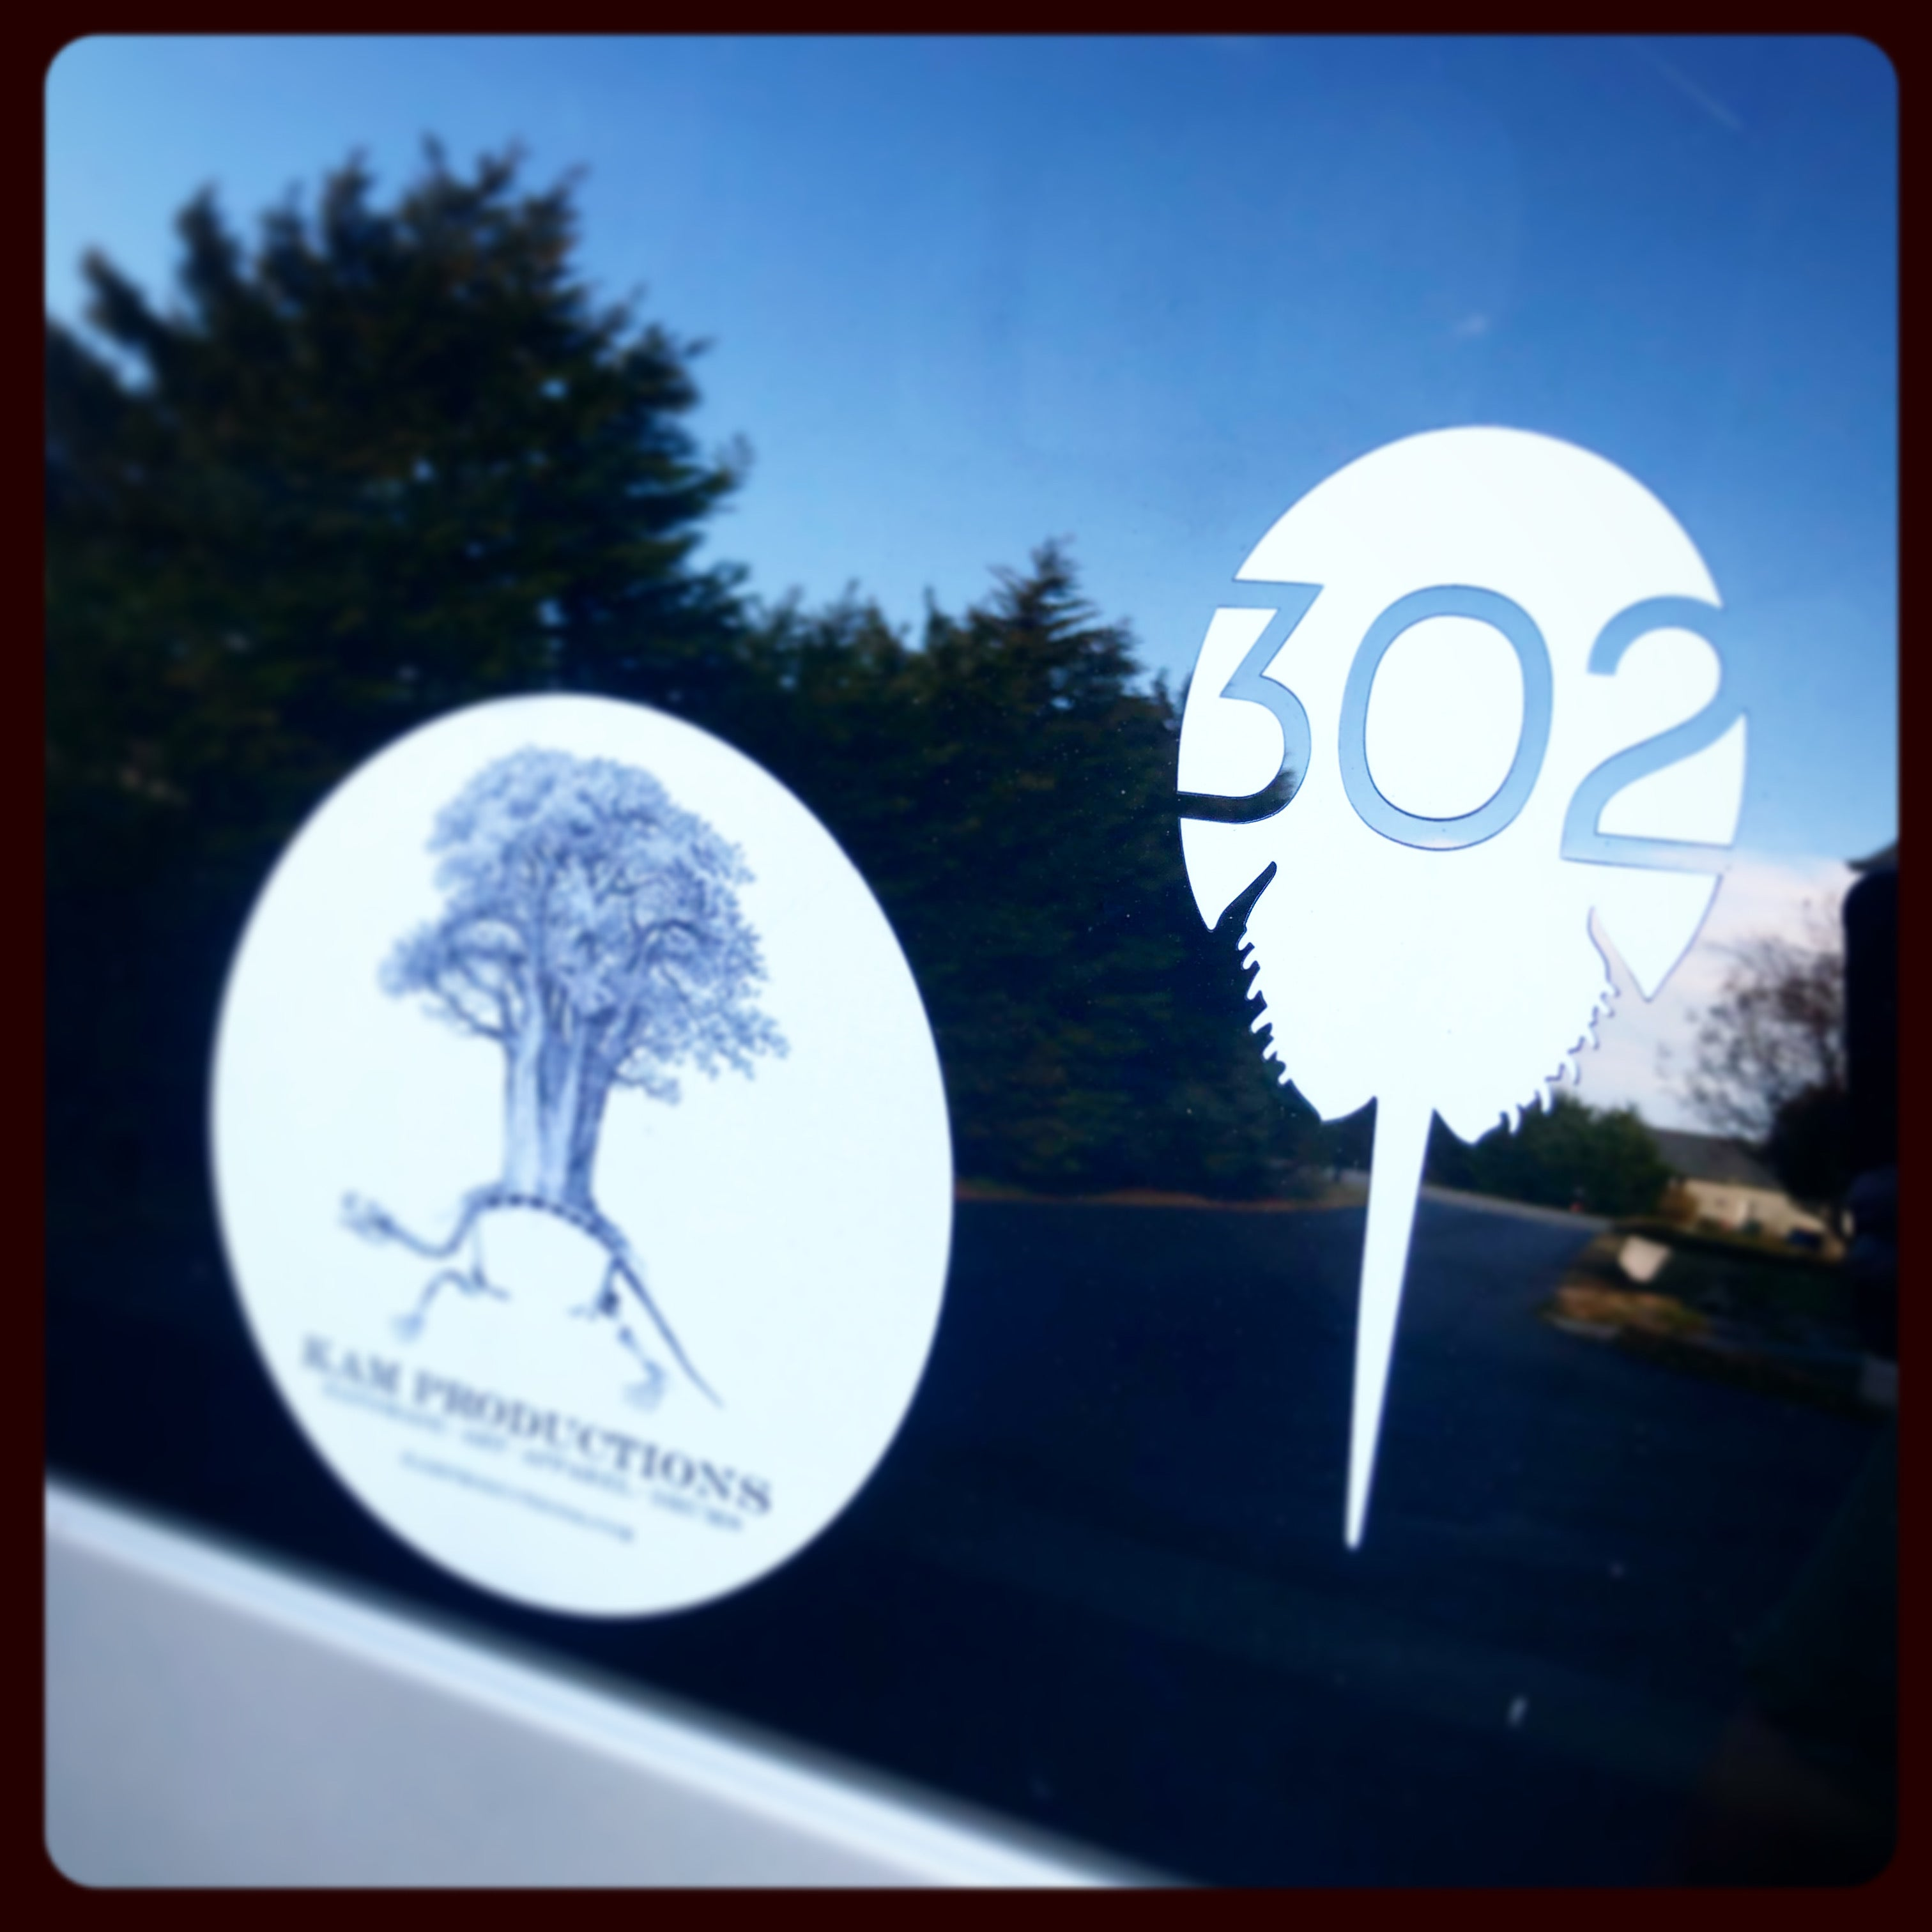 302 Large Decal